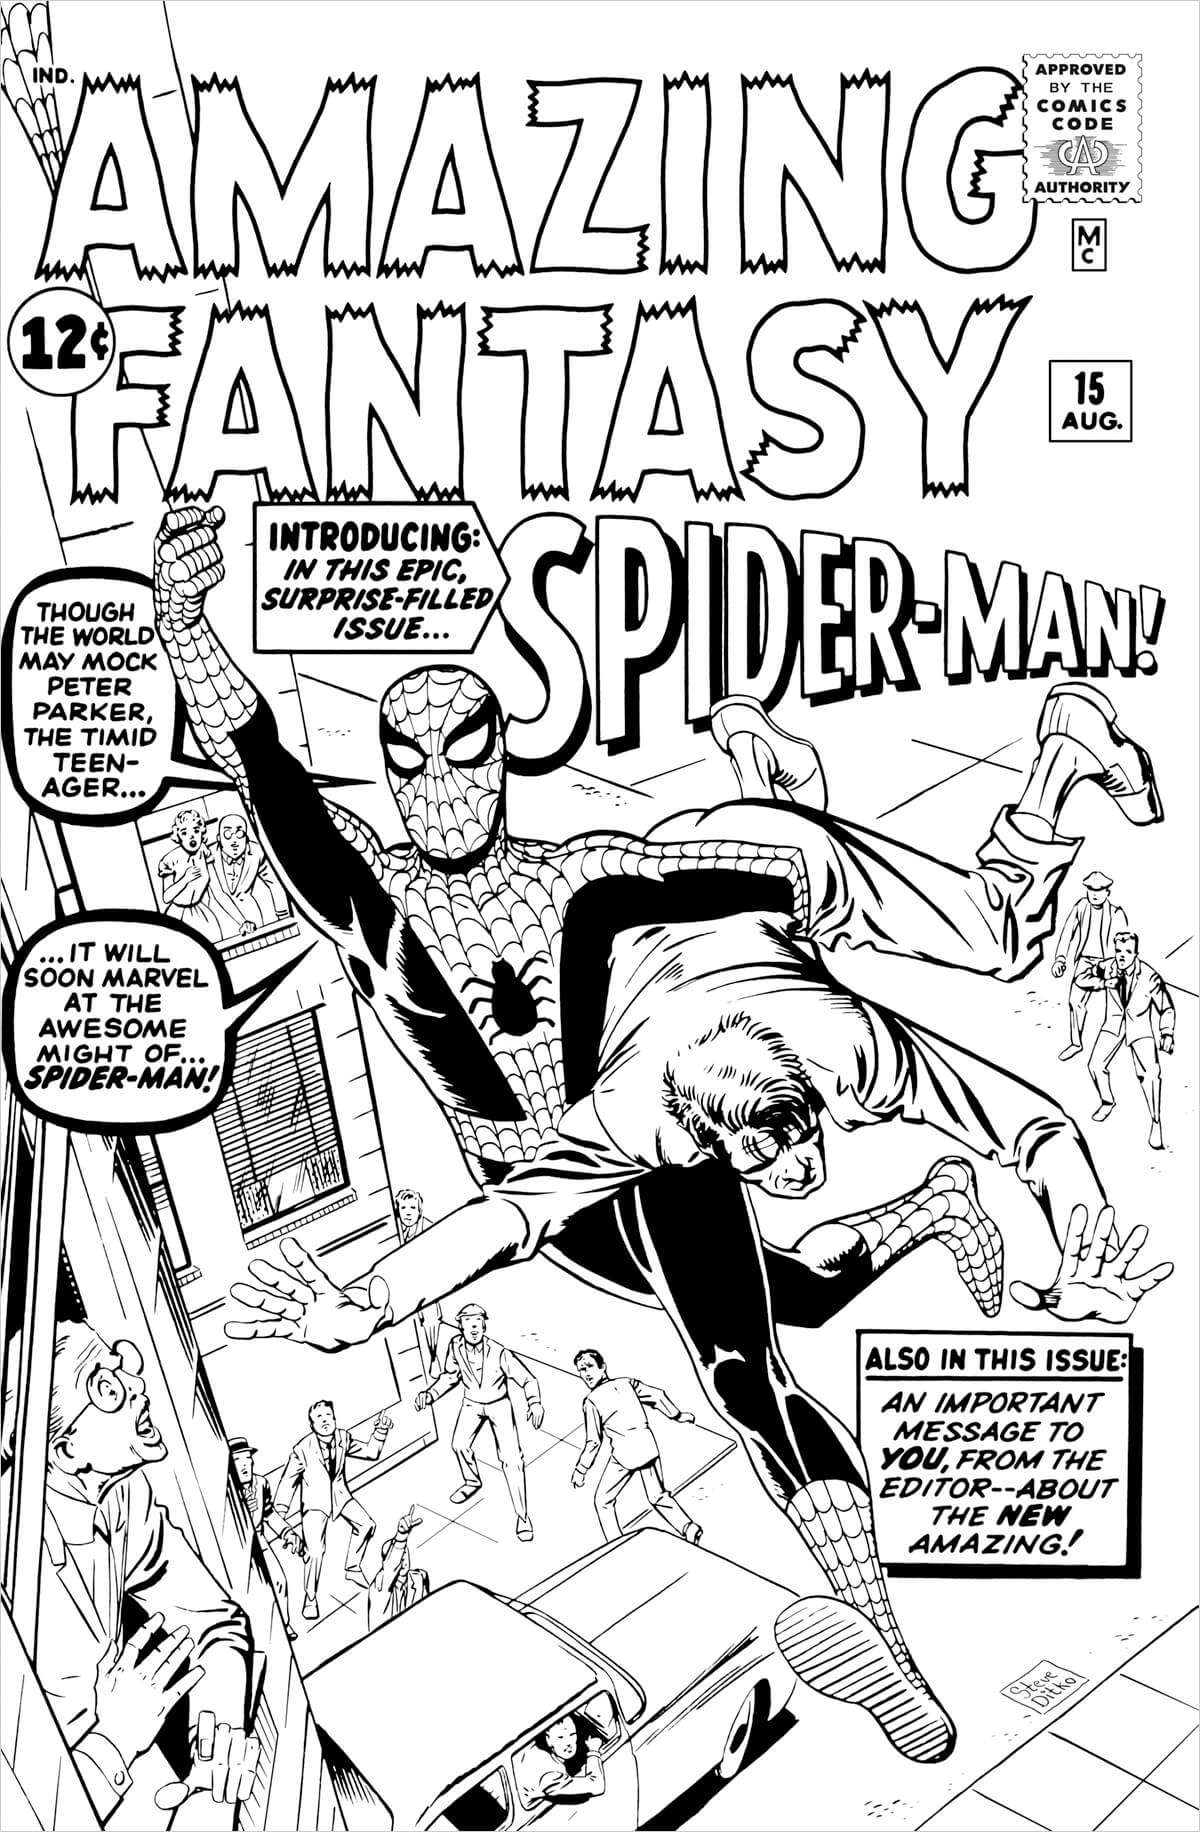 Amazing Fantasy 15 cover by Steve Ditko